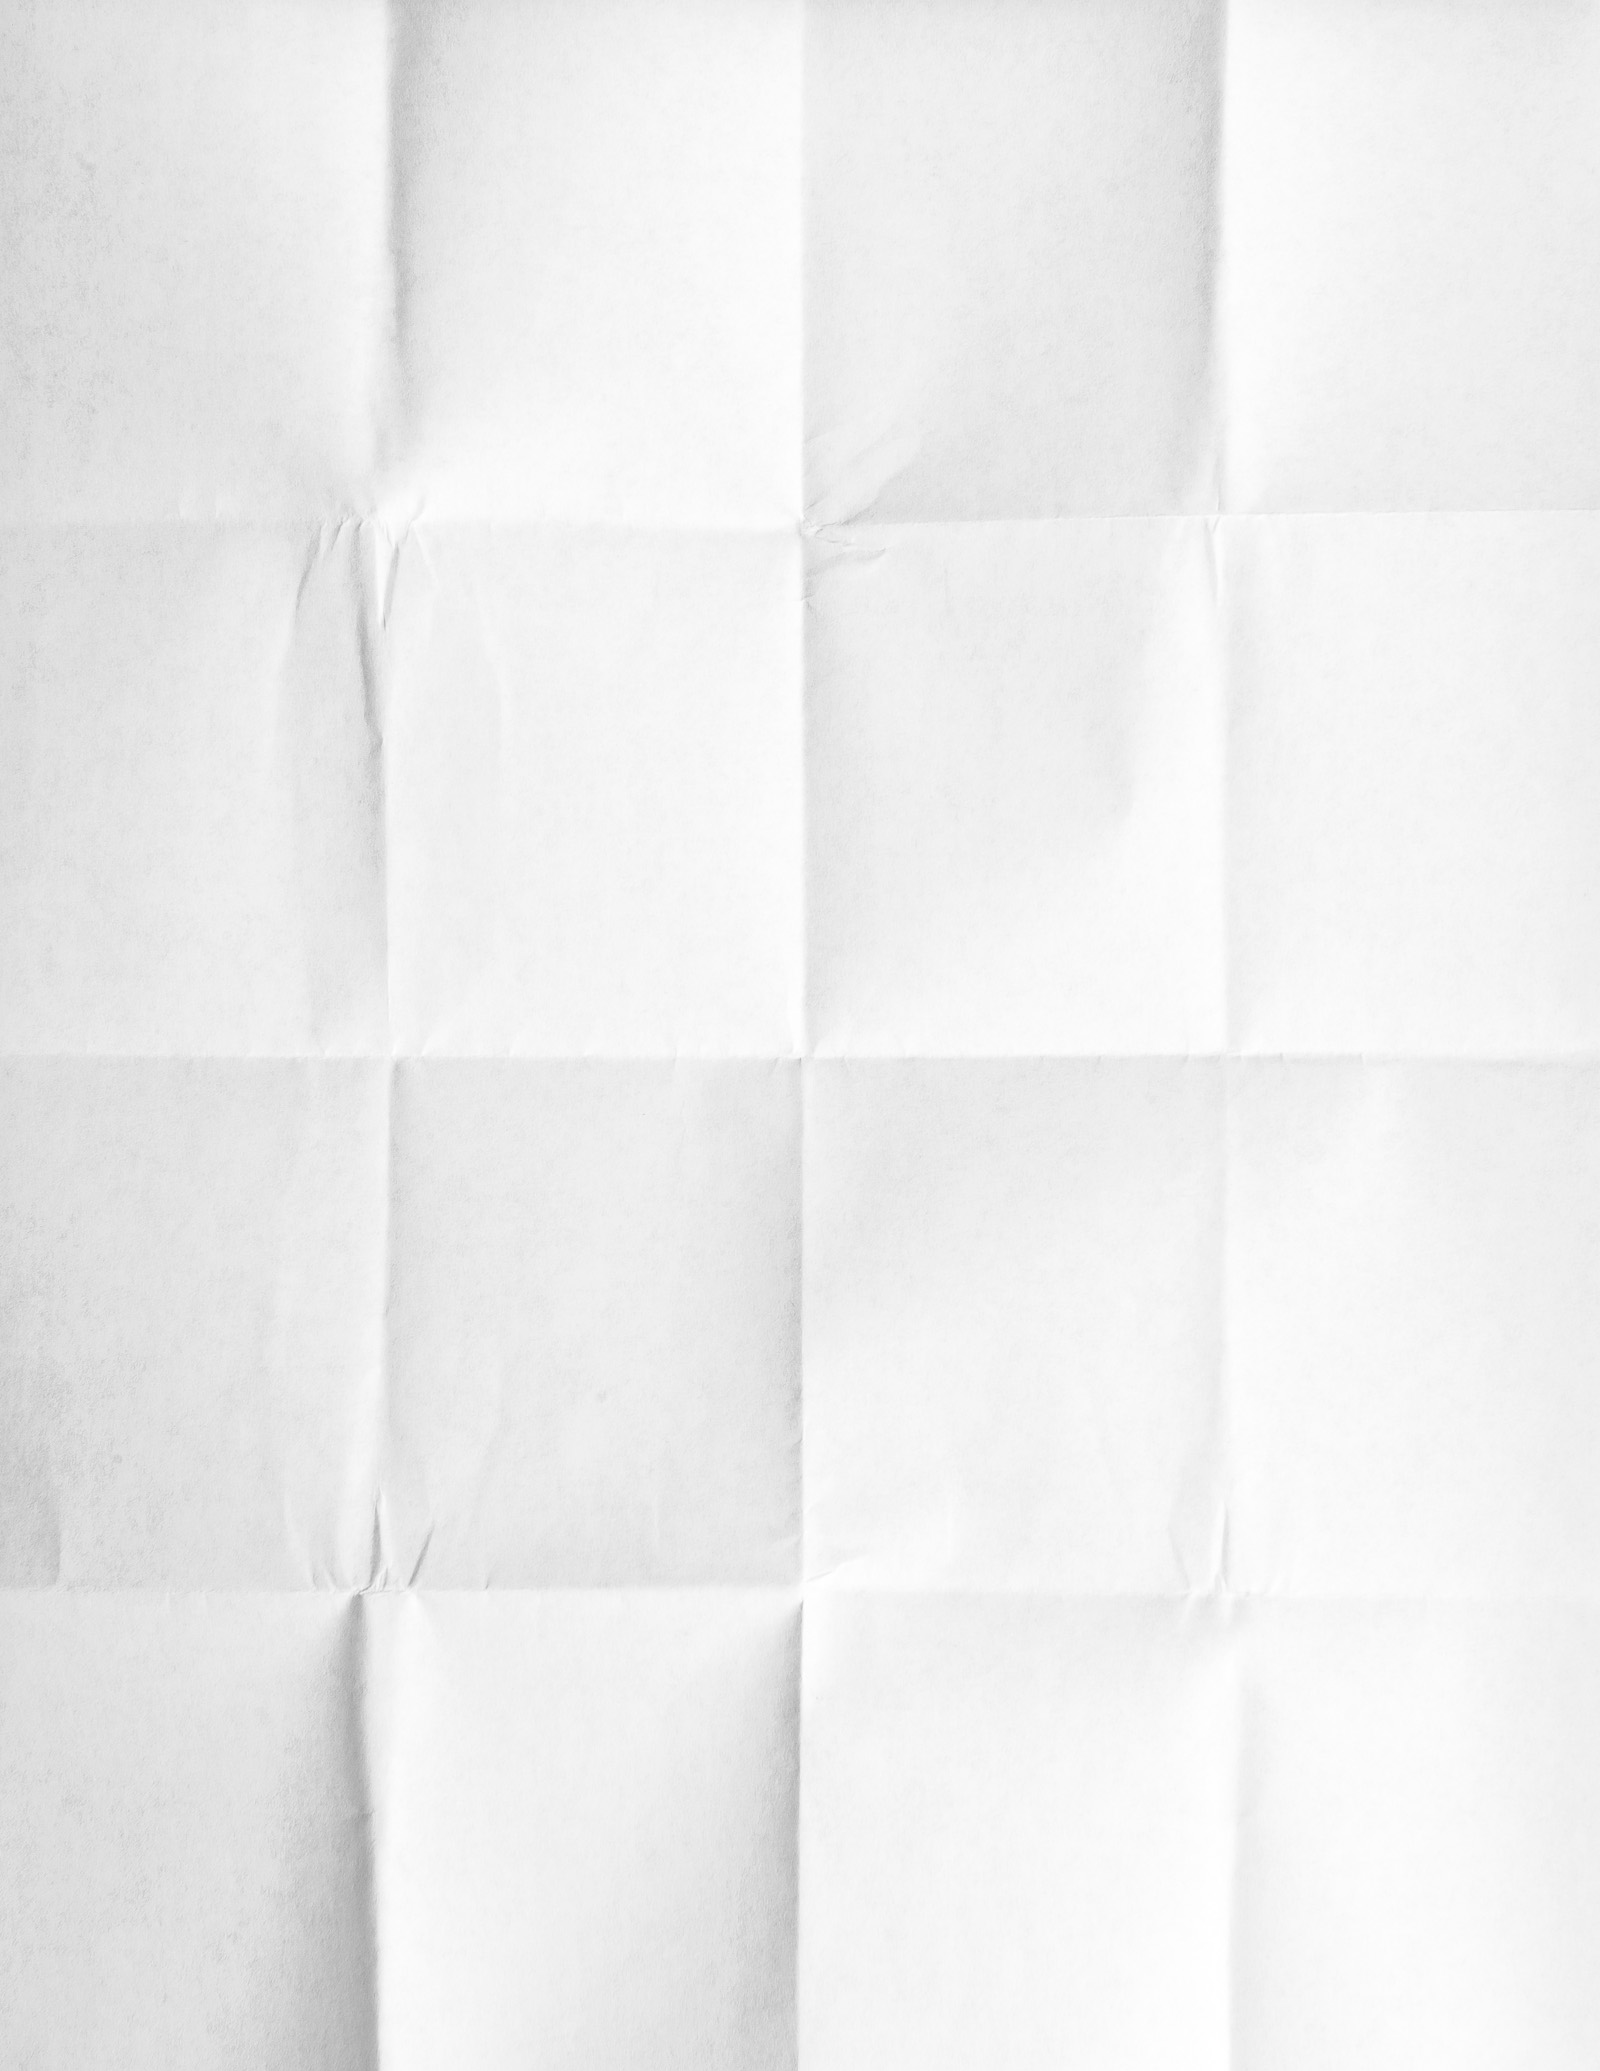 White left the crease paper textures 51760